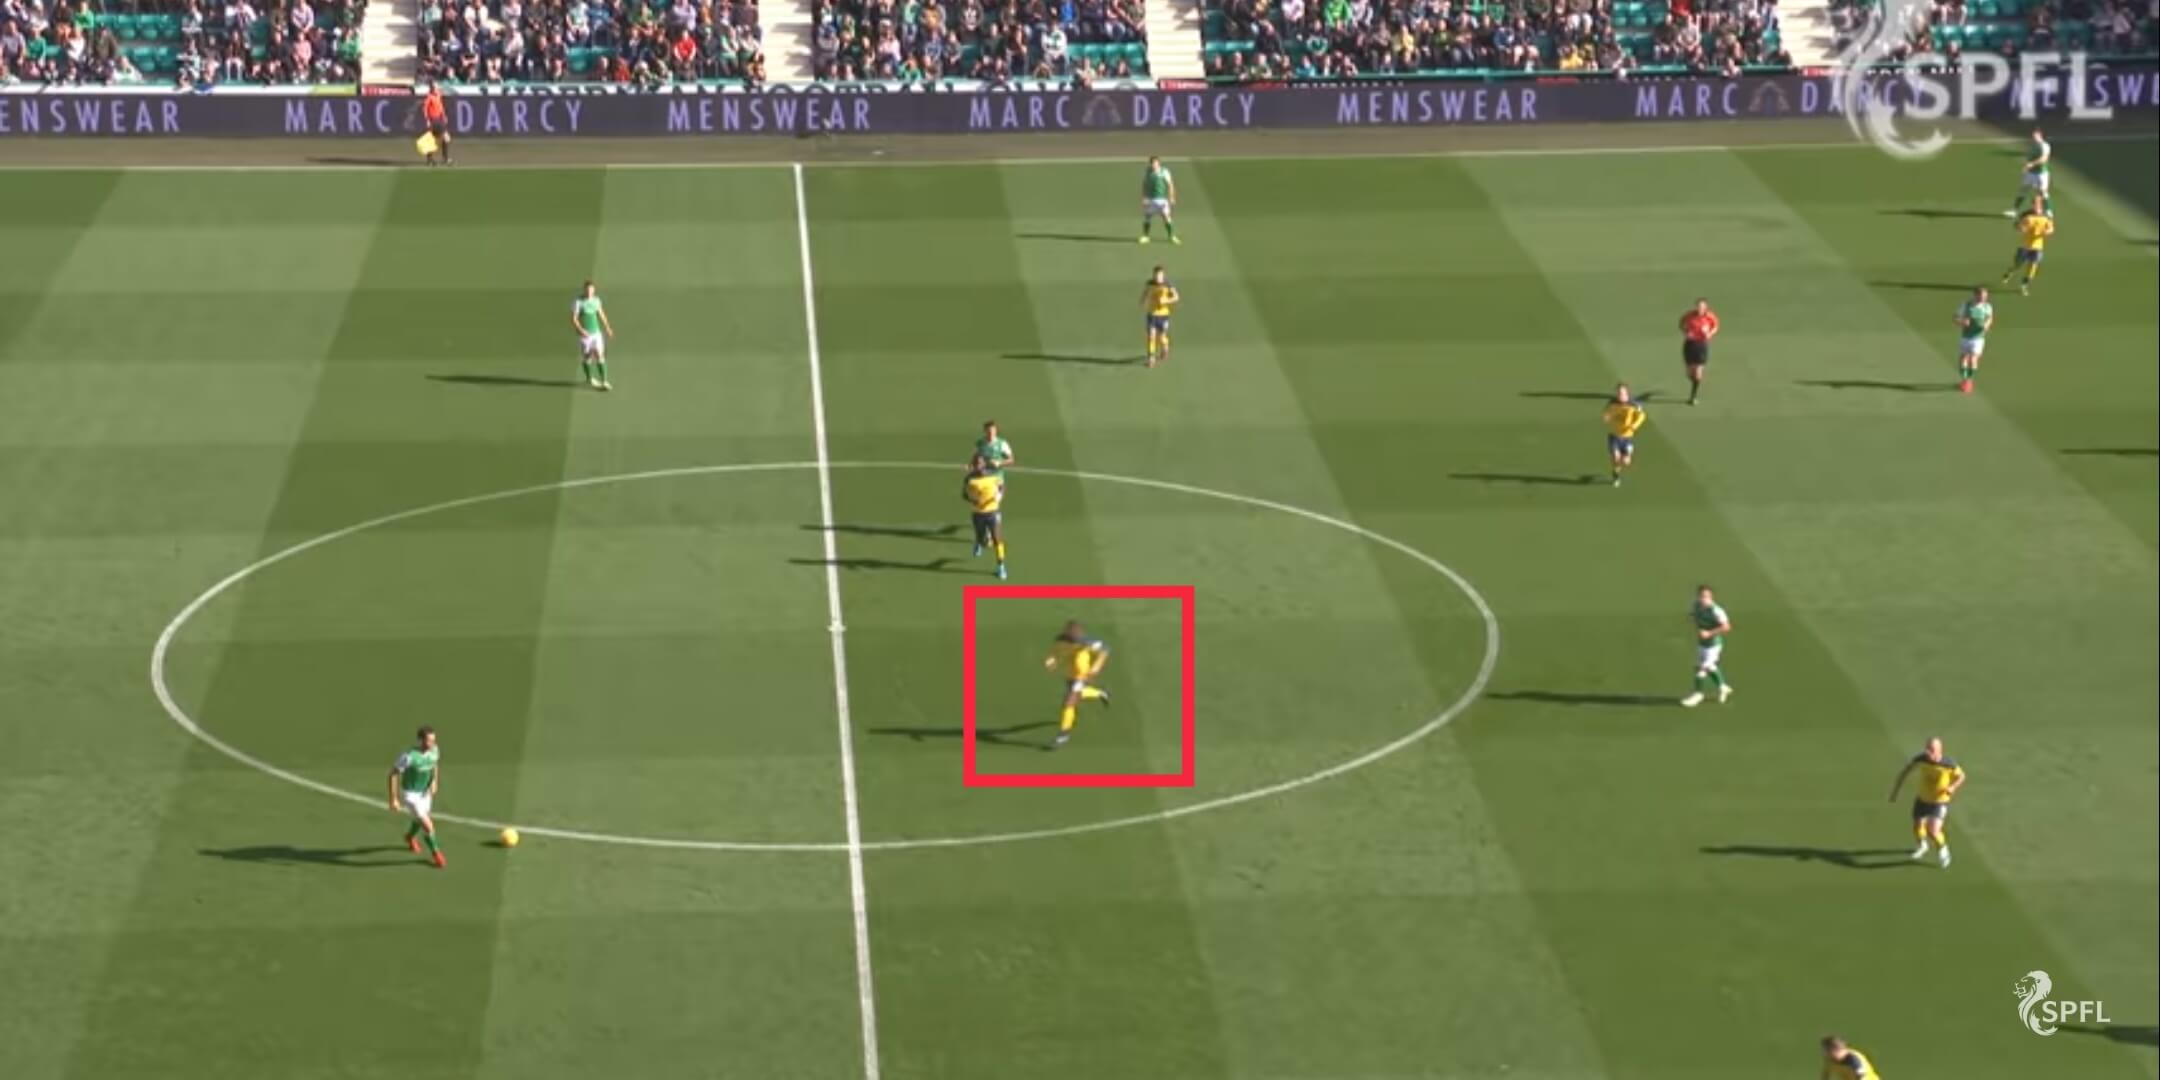 Olivier Ntcham 2019/20 scout report+ tactical analysis tactics